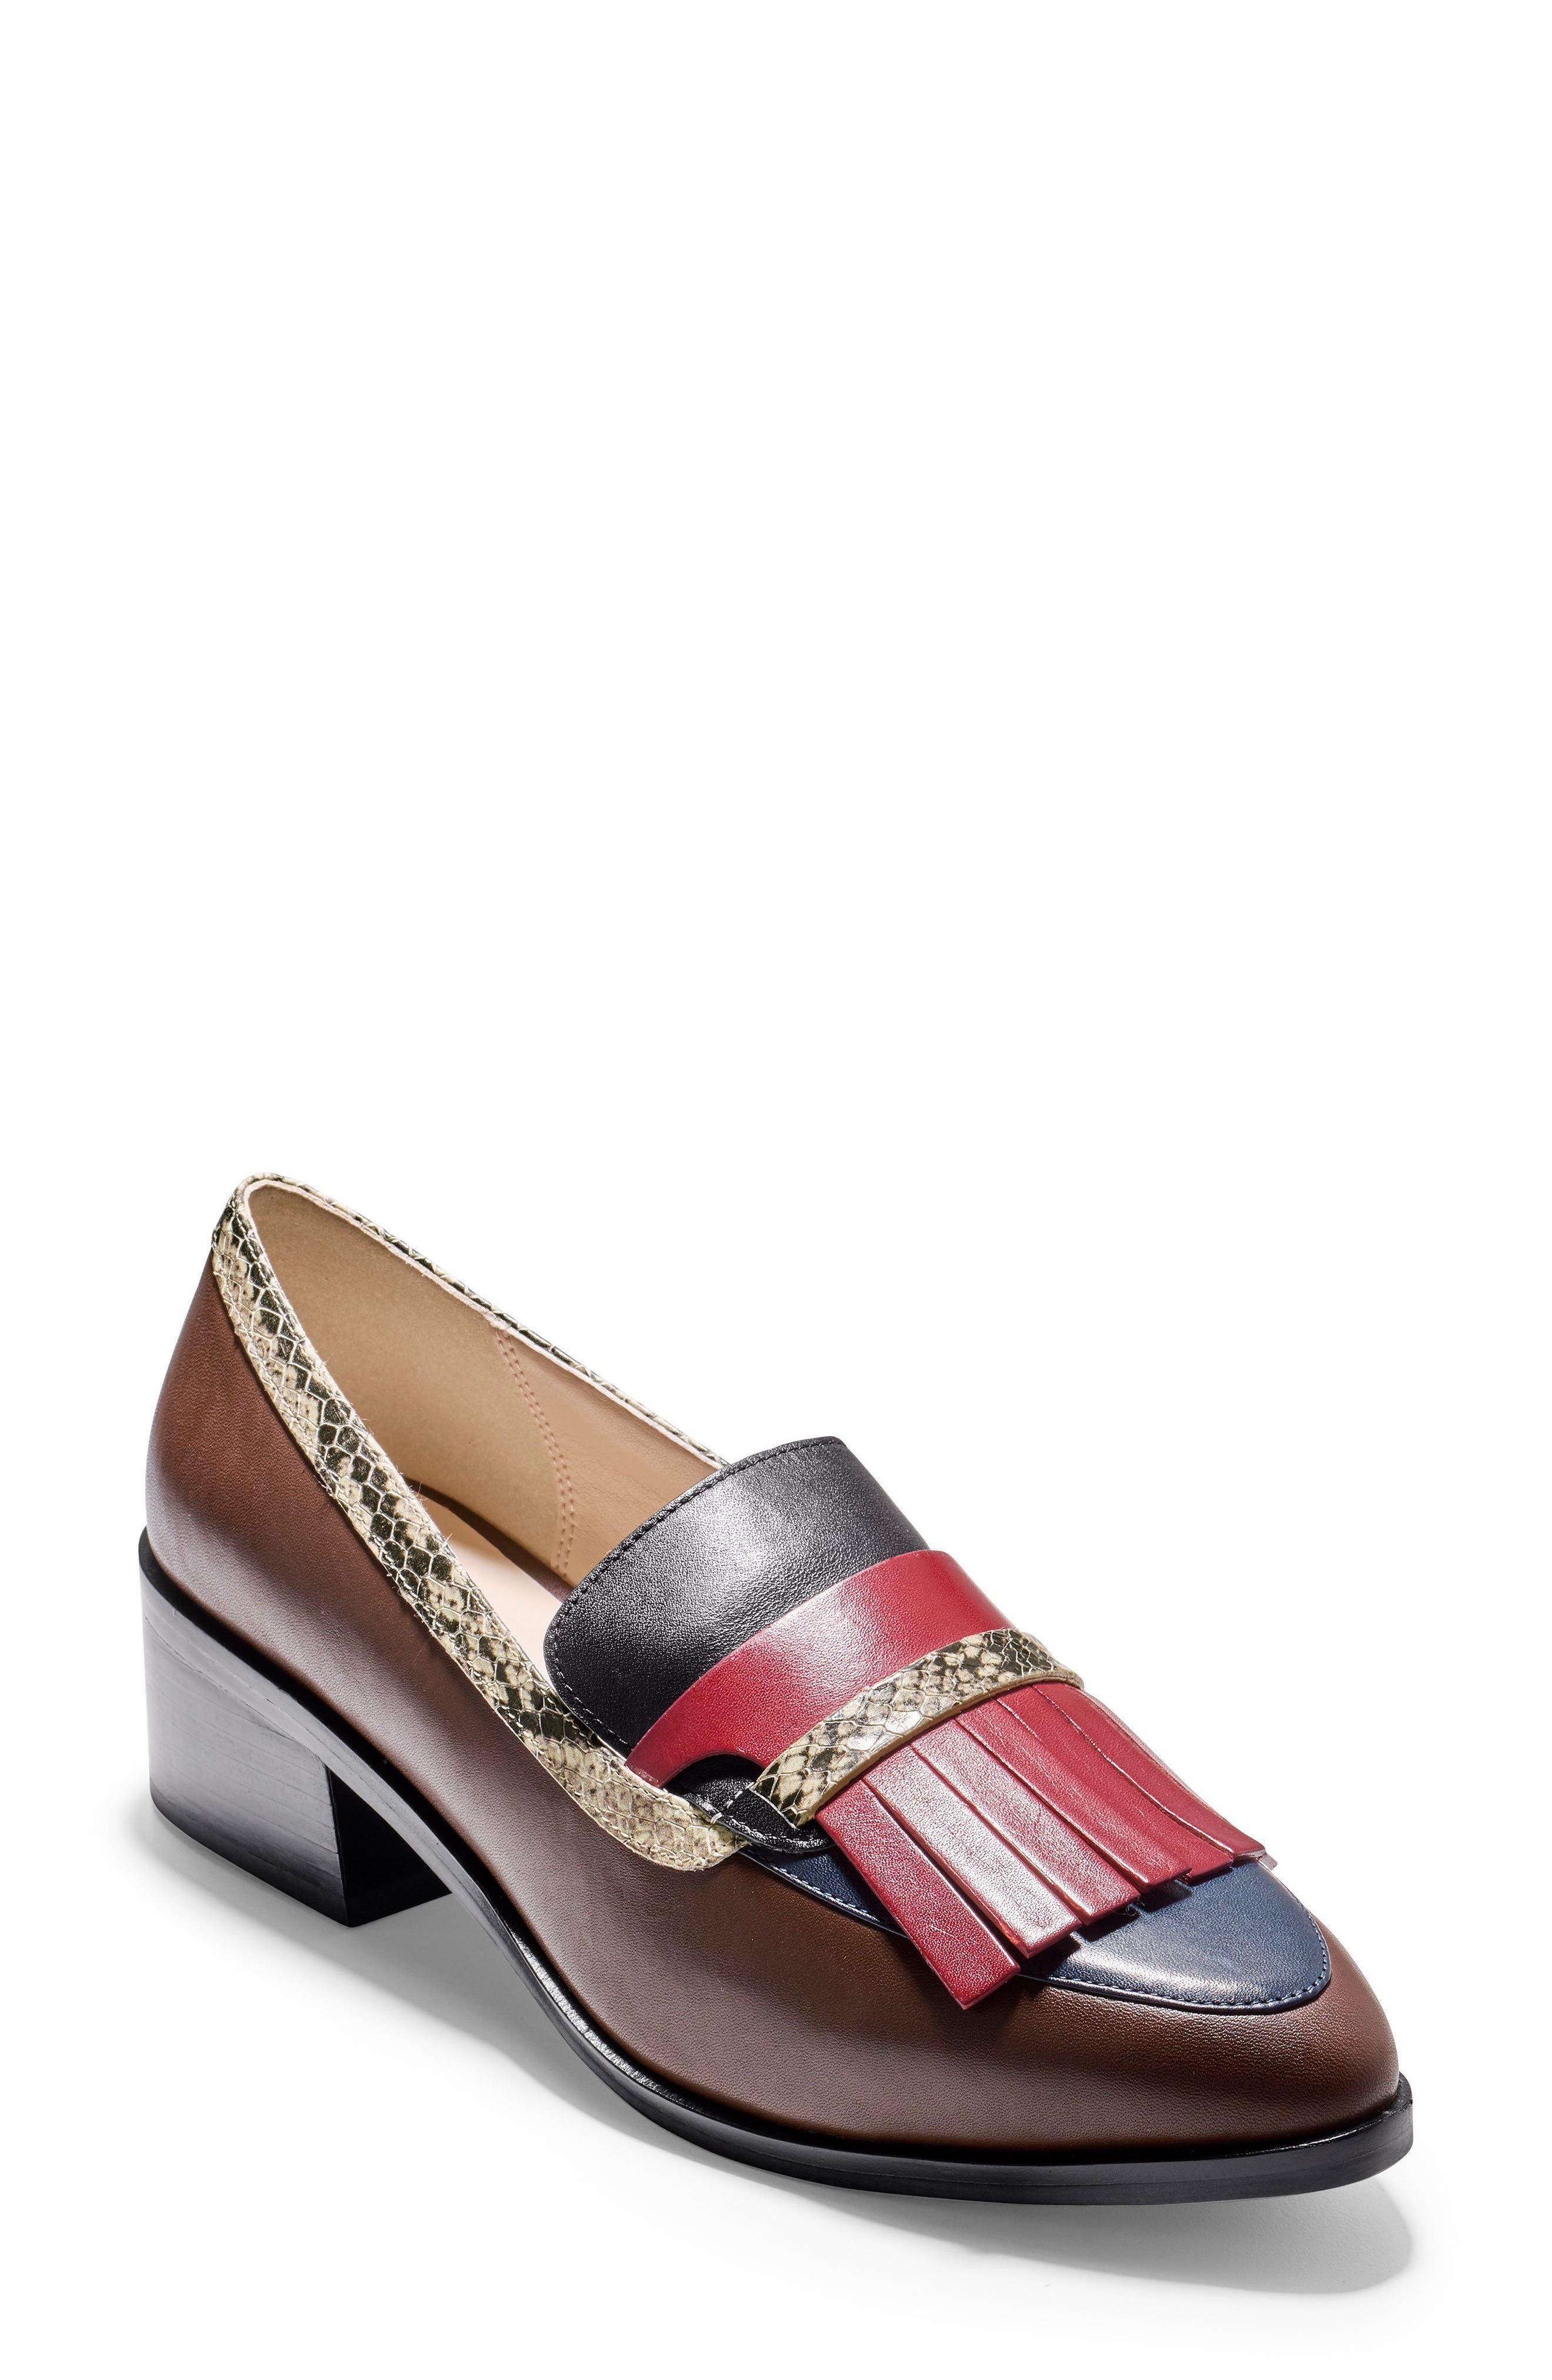 Main Image - Cole Haan Margarite Loafer Pump (Women)